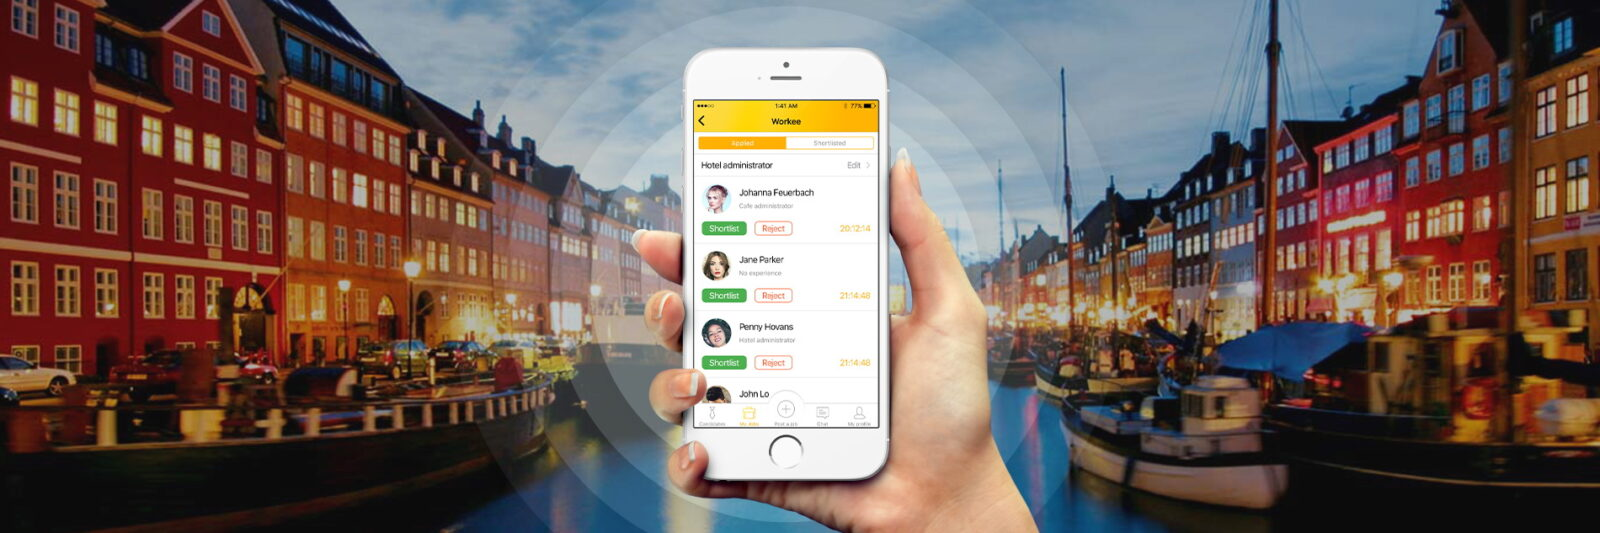 Workee is Launched to Provide the Ability to Hire Hotel & Restaurant Staff in Hours